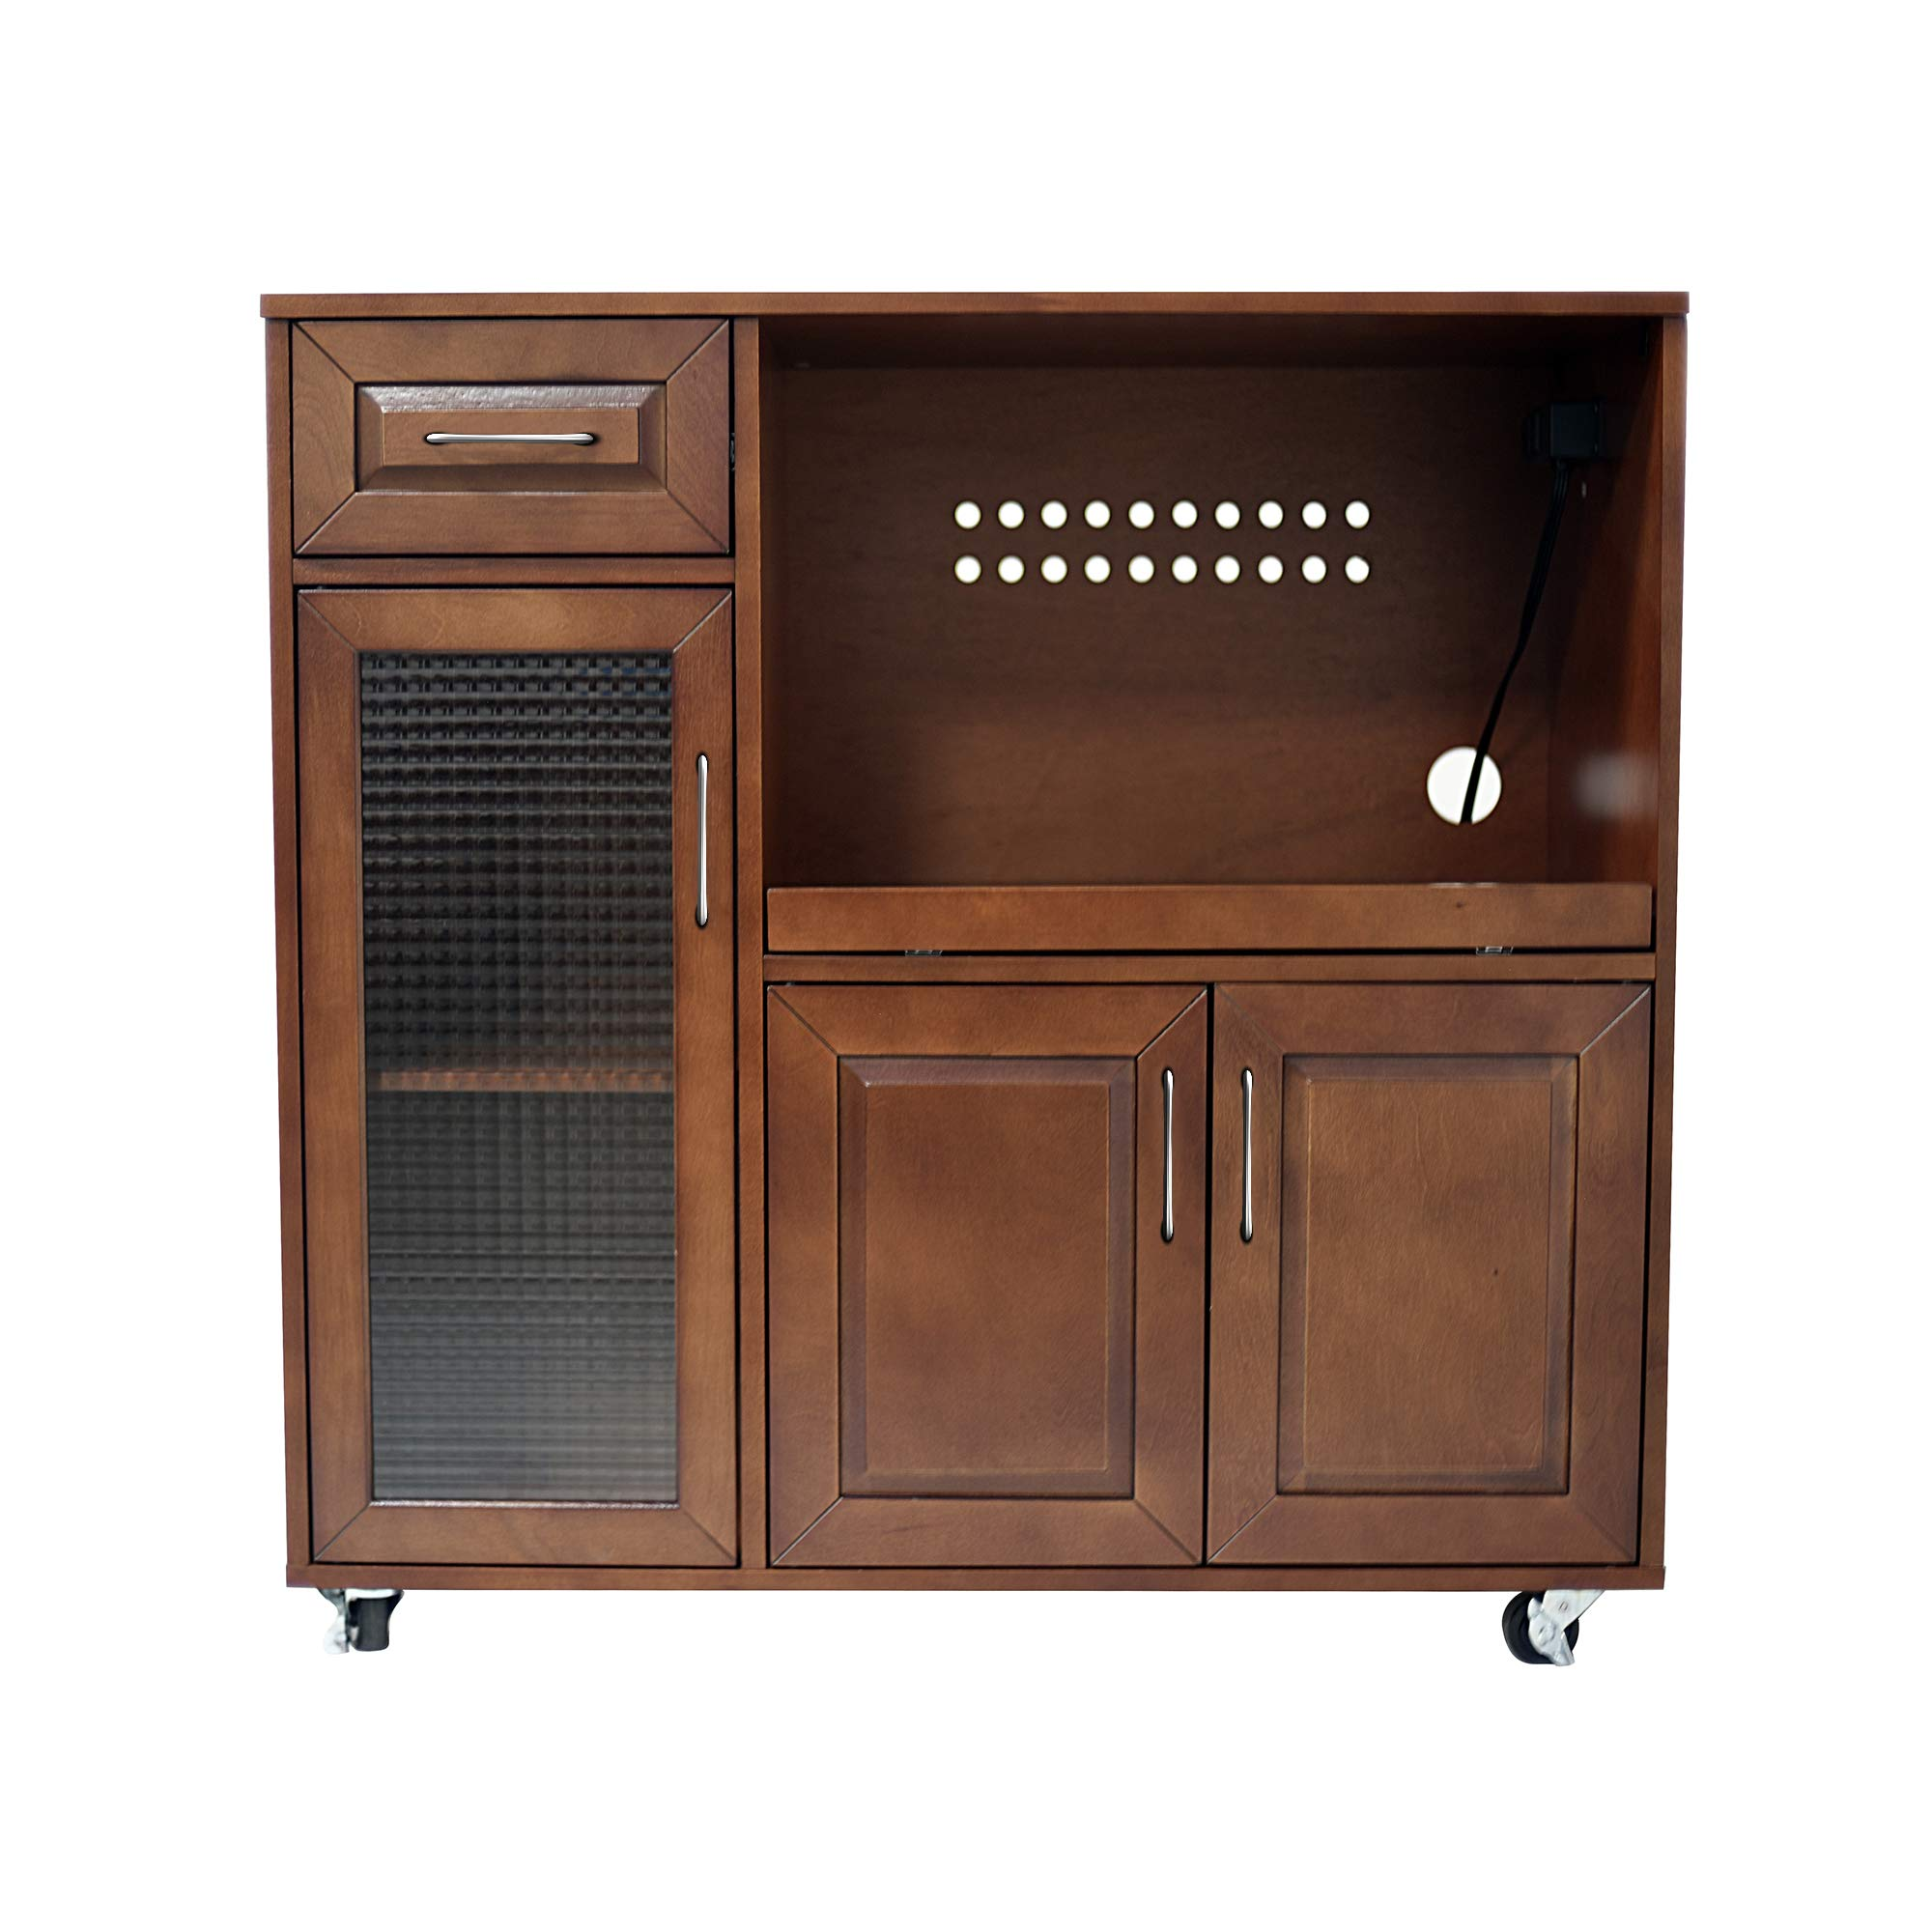 NBLiner Natural Wood Kitchen Enclosed Cabinet Space, Storage, Walnut